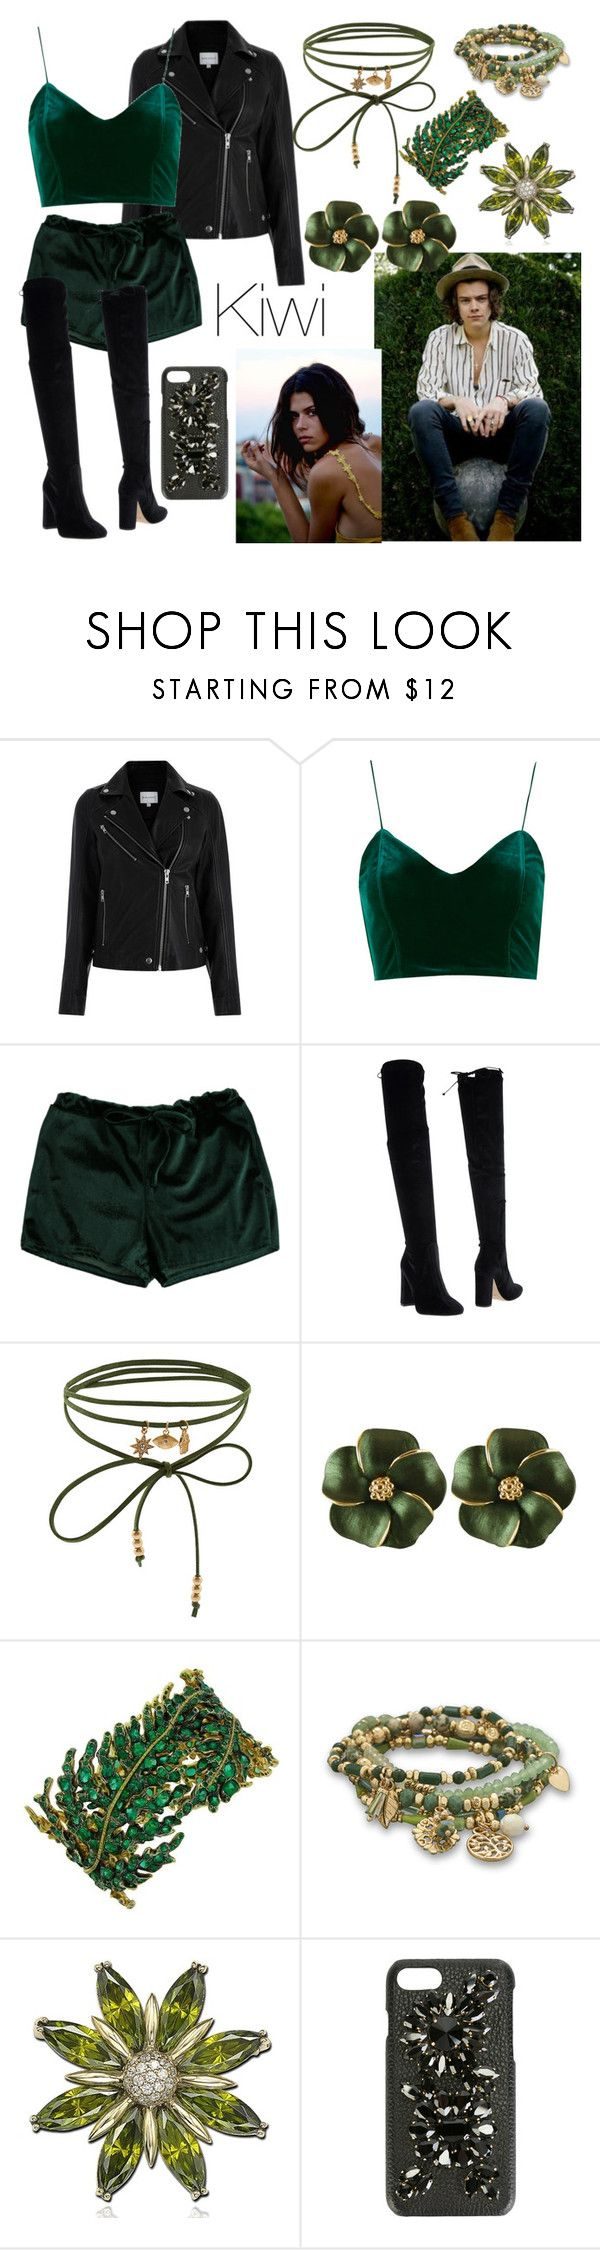 """Kiwi // H.A.R.R.Y S.T.Y.L.E.S"" by nerdyhesc ❤ liked on Polyvore featuring Bianca Di, Accessorize, BillyTheTree, Suzy Levian and Dolce&Gabbana"